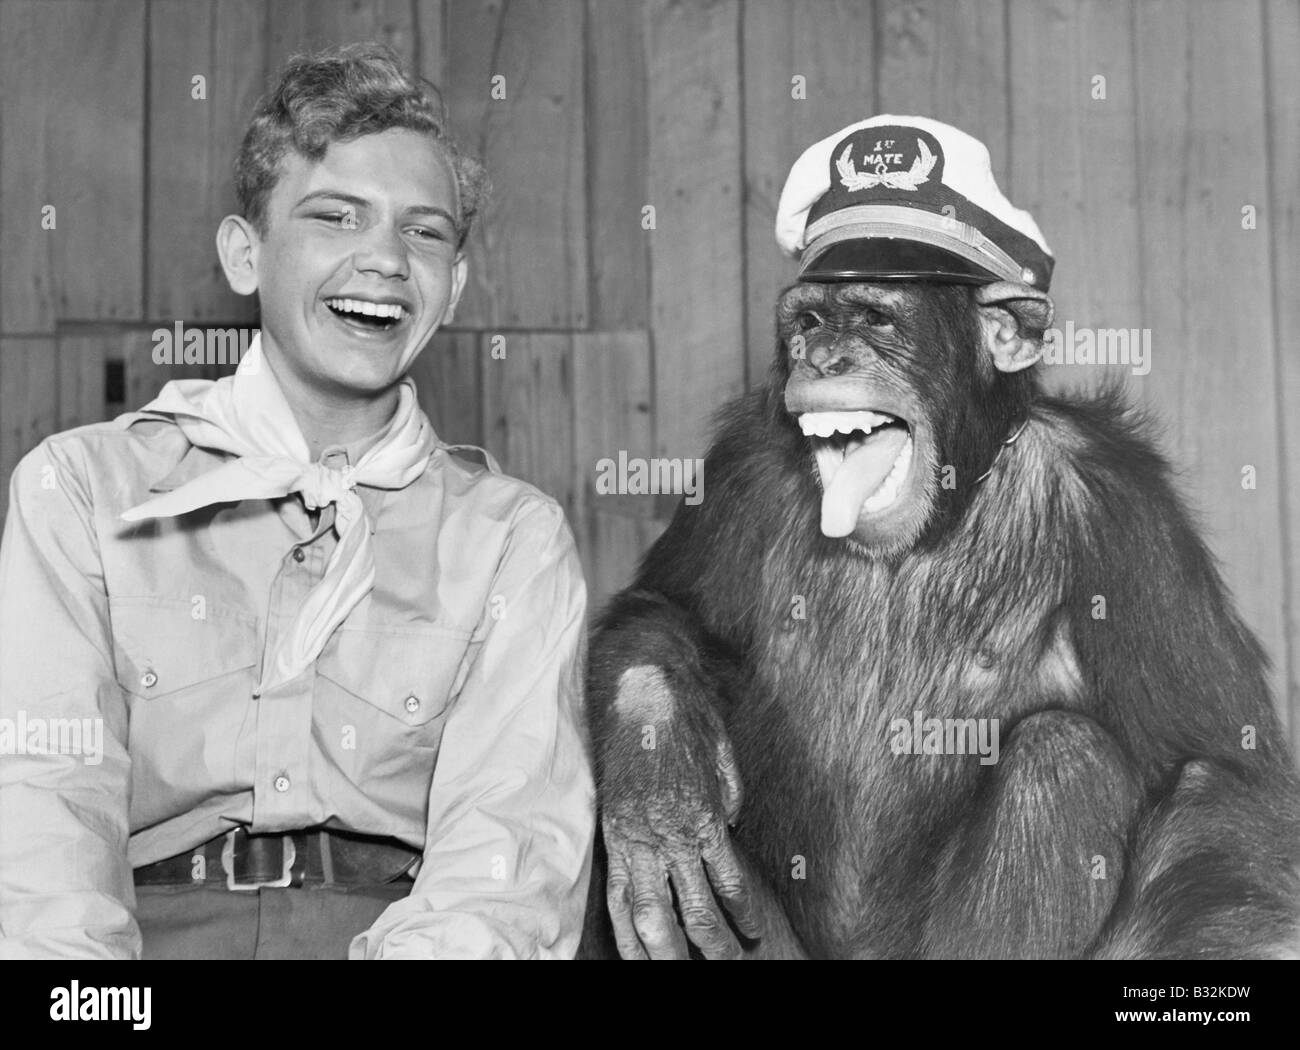 Laughing boy scout and monkey wearing hat - Stock Image